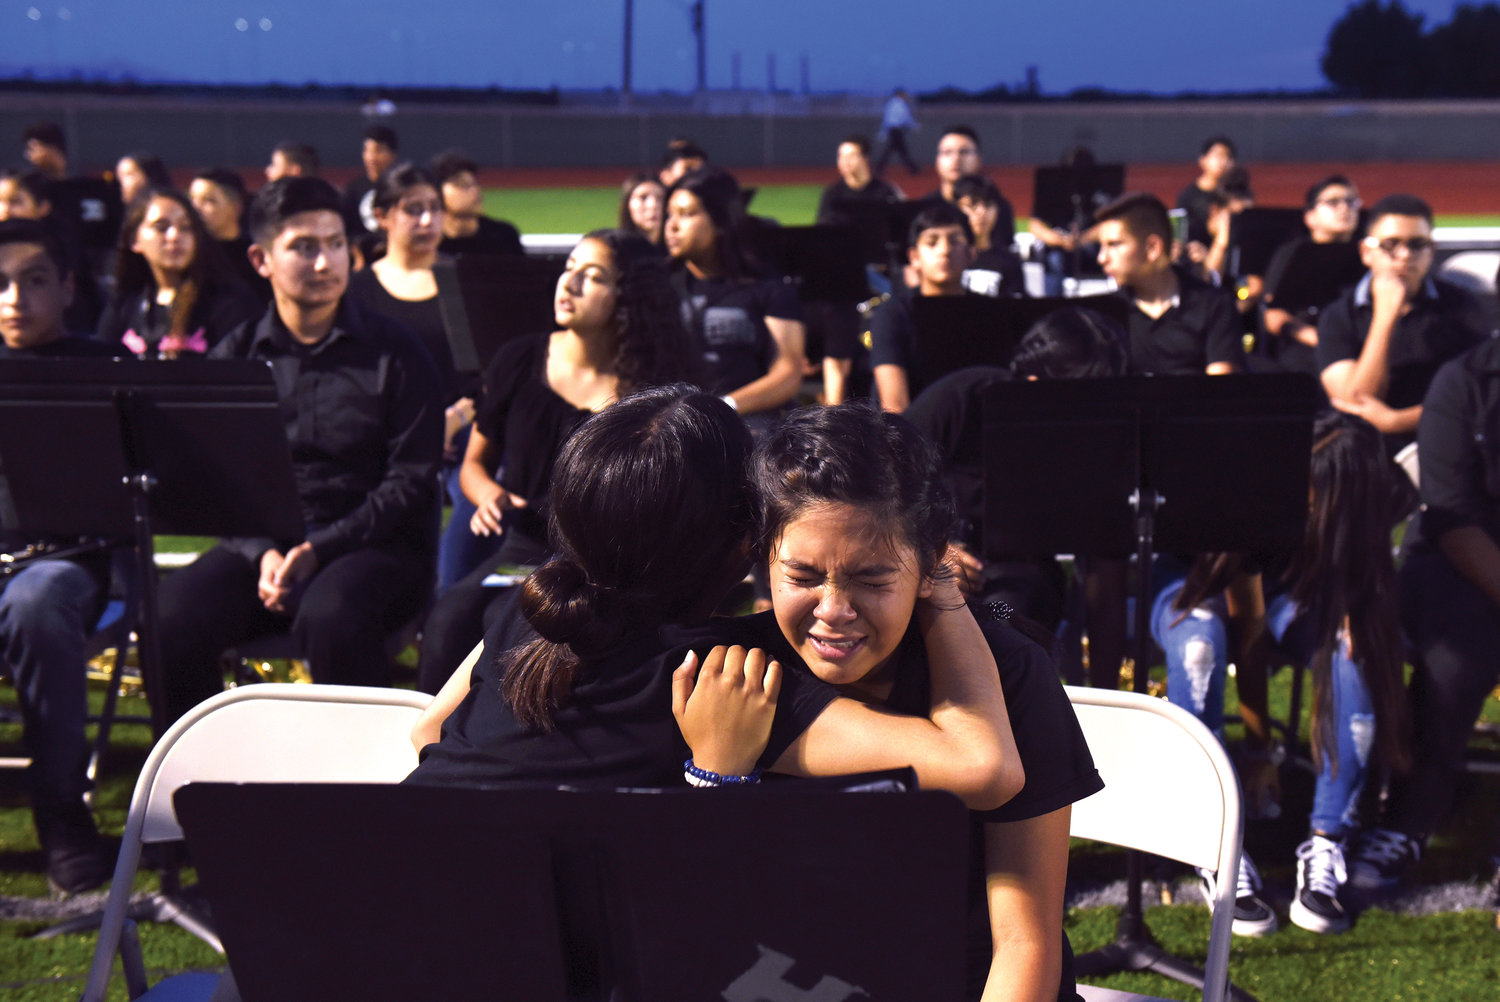 GRIEF—Horizon High School band members embrace after a vigil on Aug. 5 in honor of classmate Javier Rodriguez, who was killed while shopping at a Walmart in El Paso, Texas.